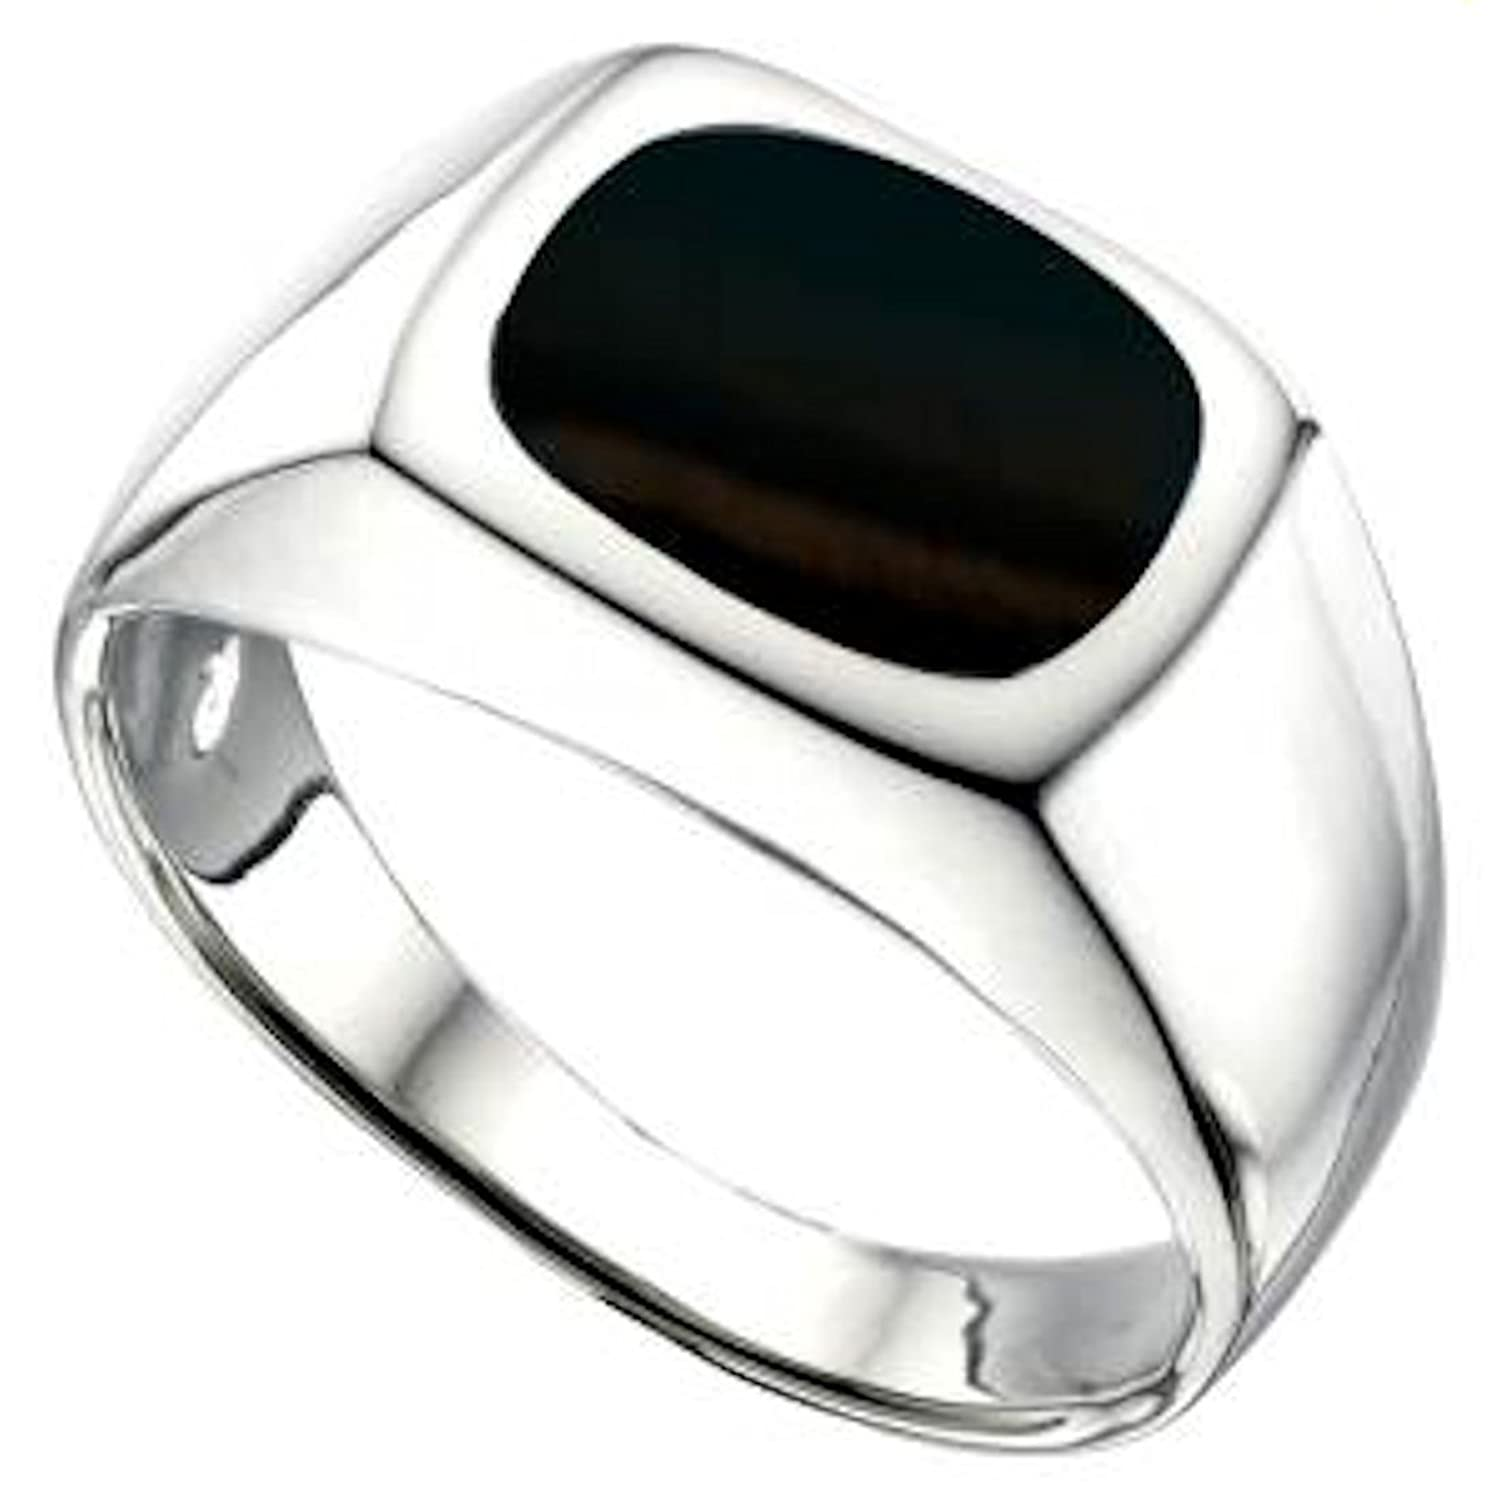 MENS BLACK ONYX SIGNET RING You choose size O up to Z2 Amazon